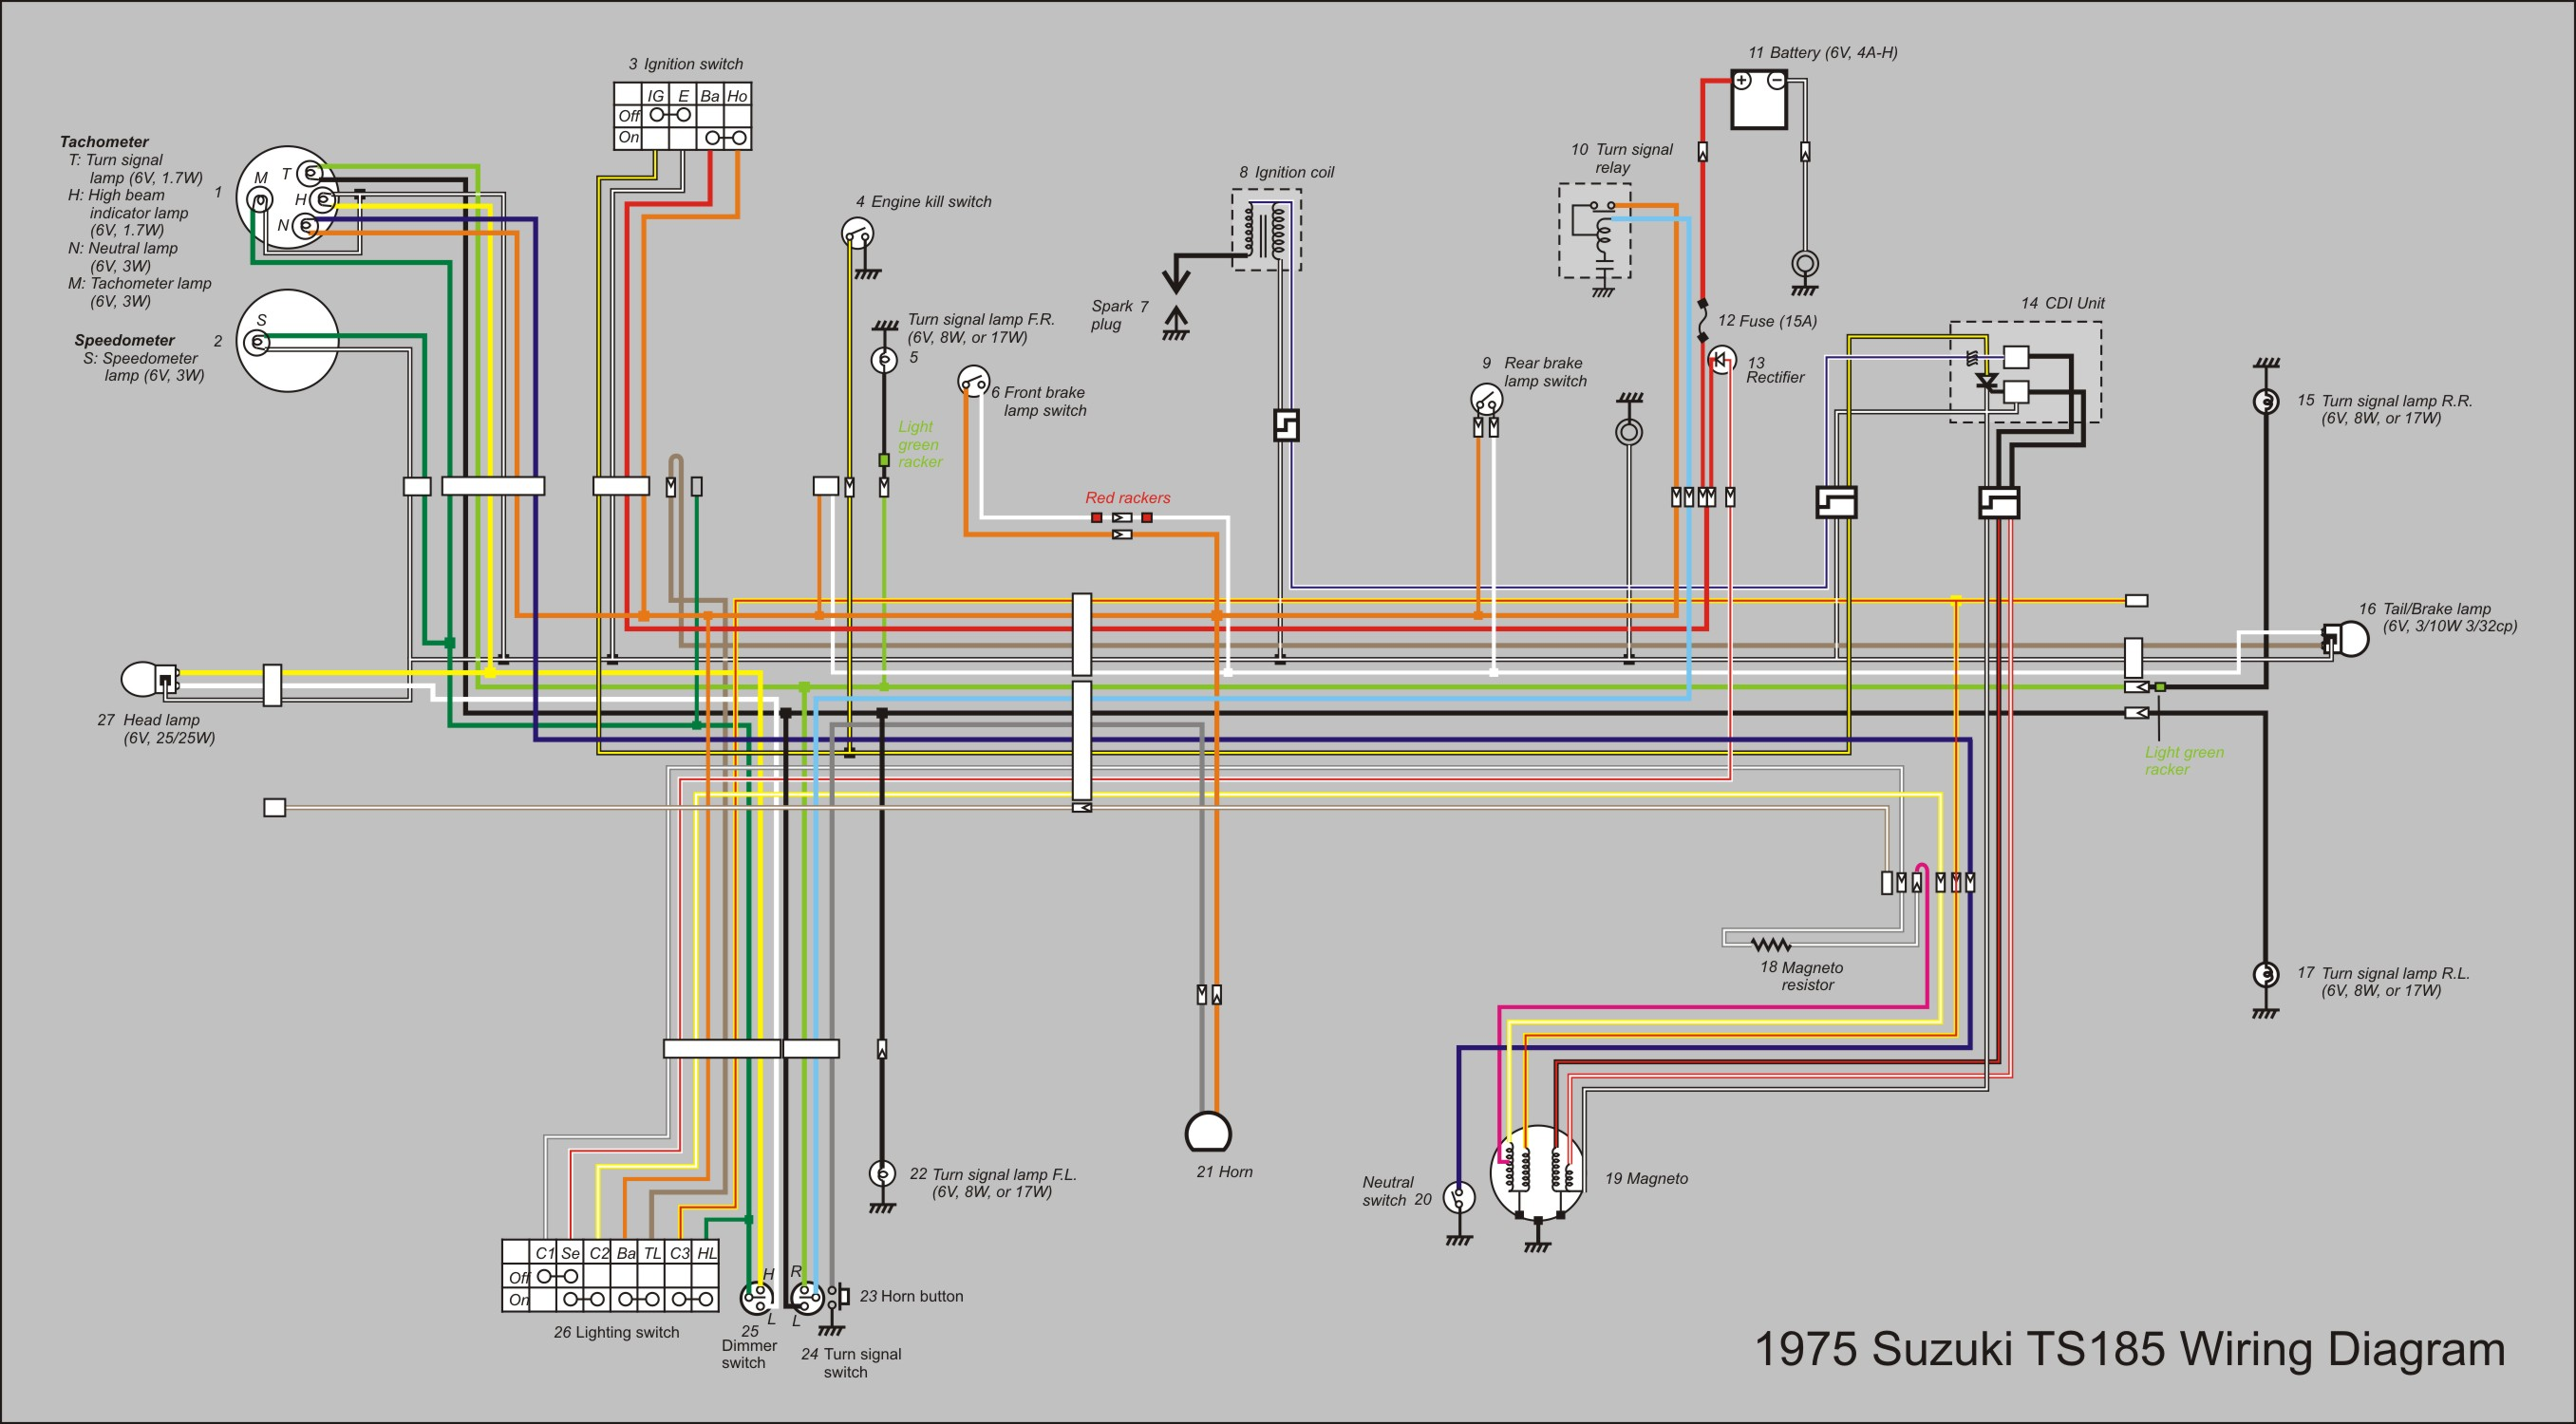 file ts185 wiring diagram new jpg wikimedia commons Suzuki GS550 Wiring-Diagram